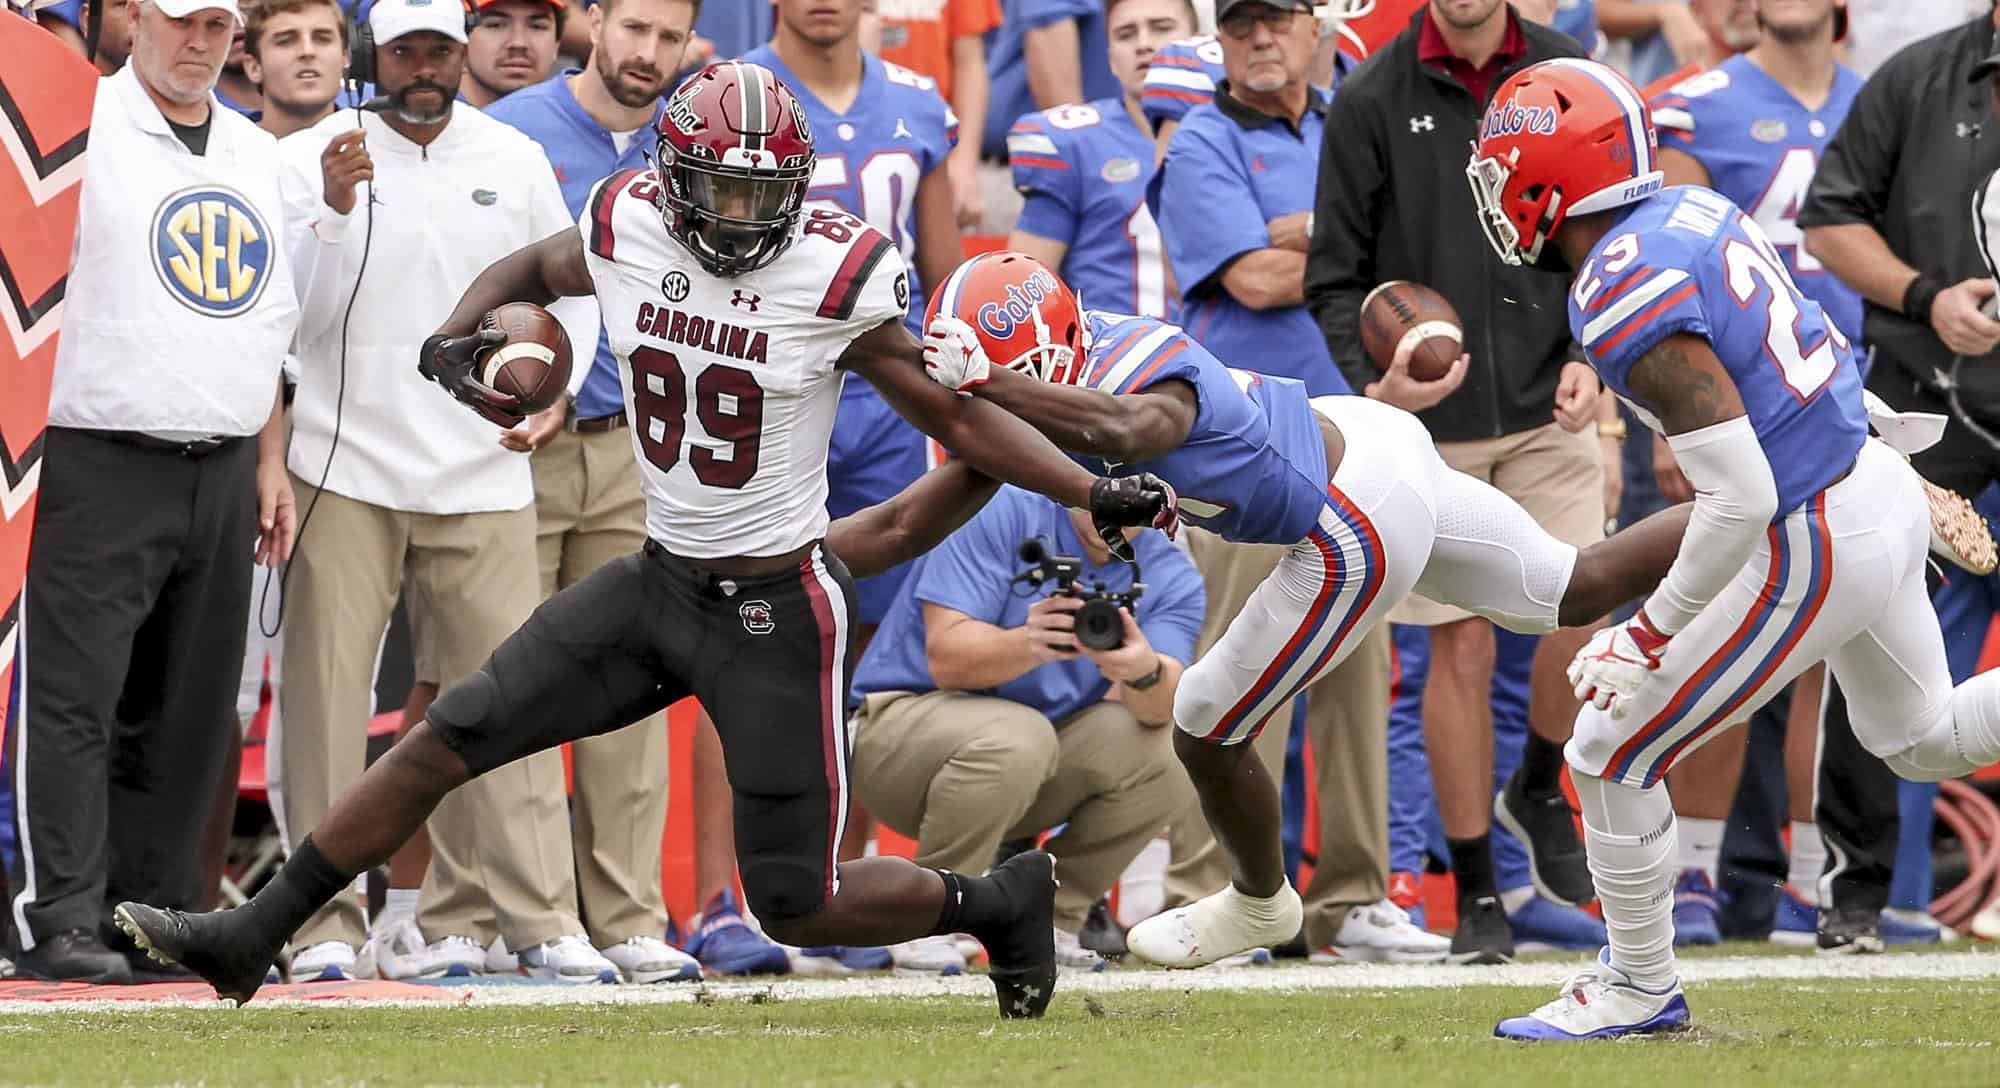 2020 NFL Draft Musings: Underrated prospects from the SEC